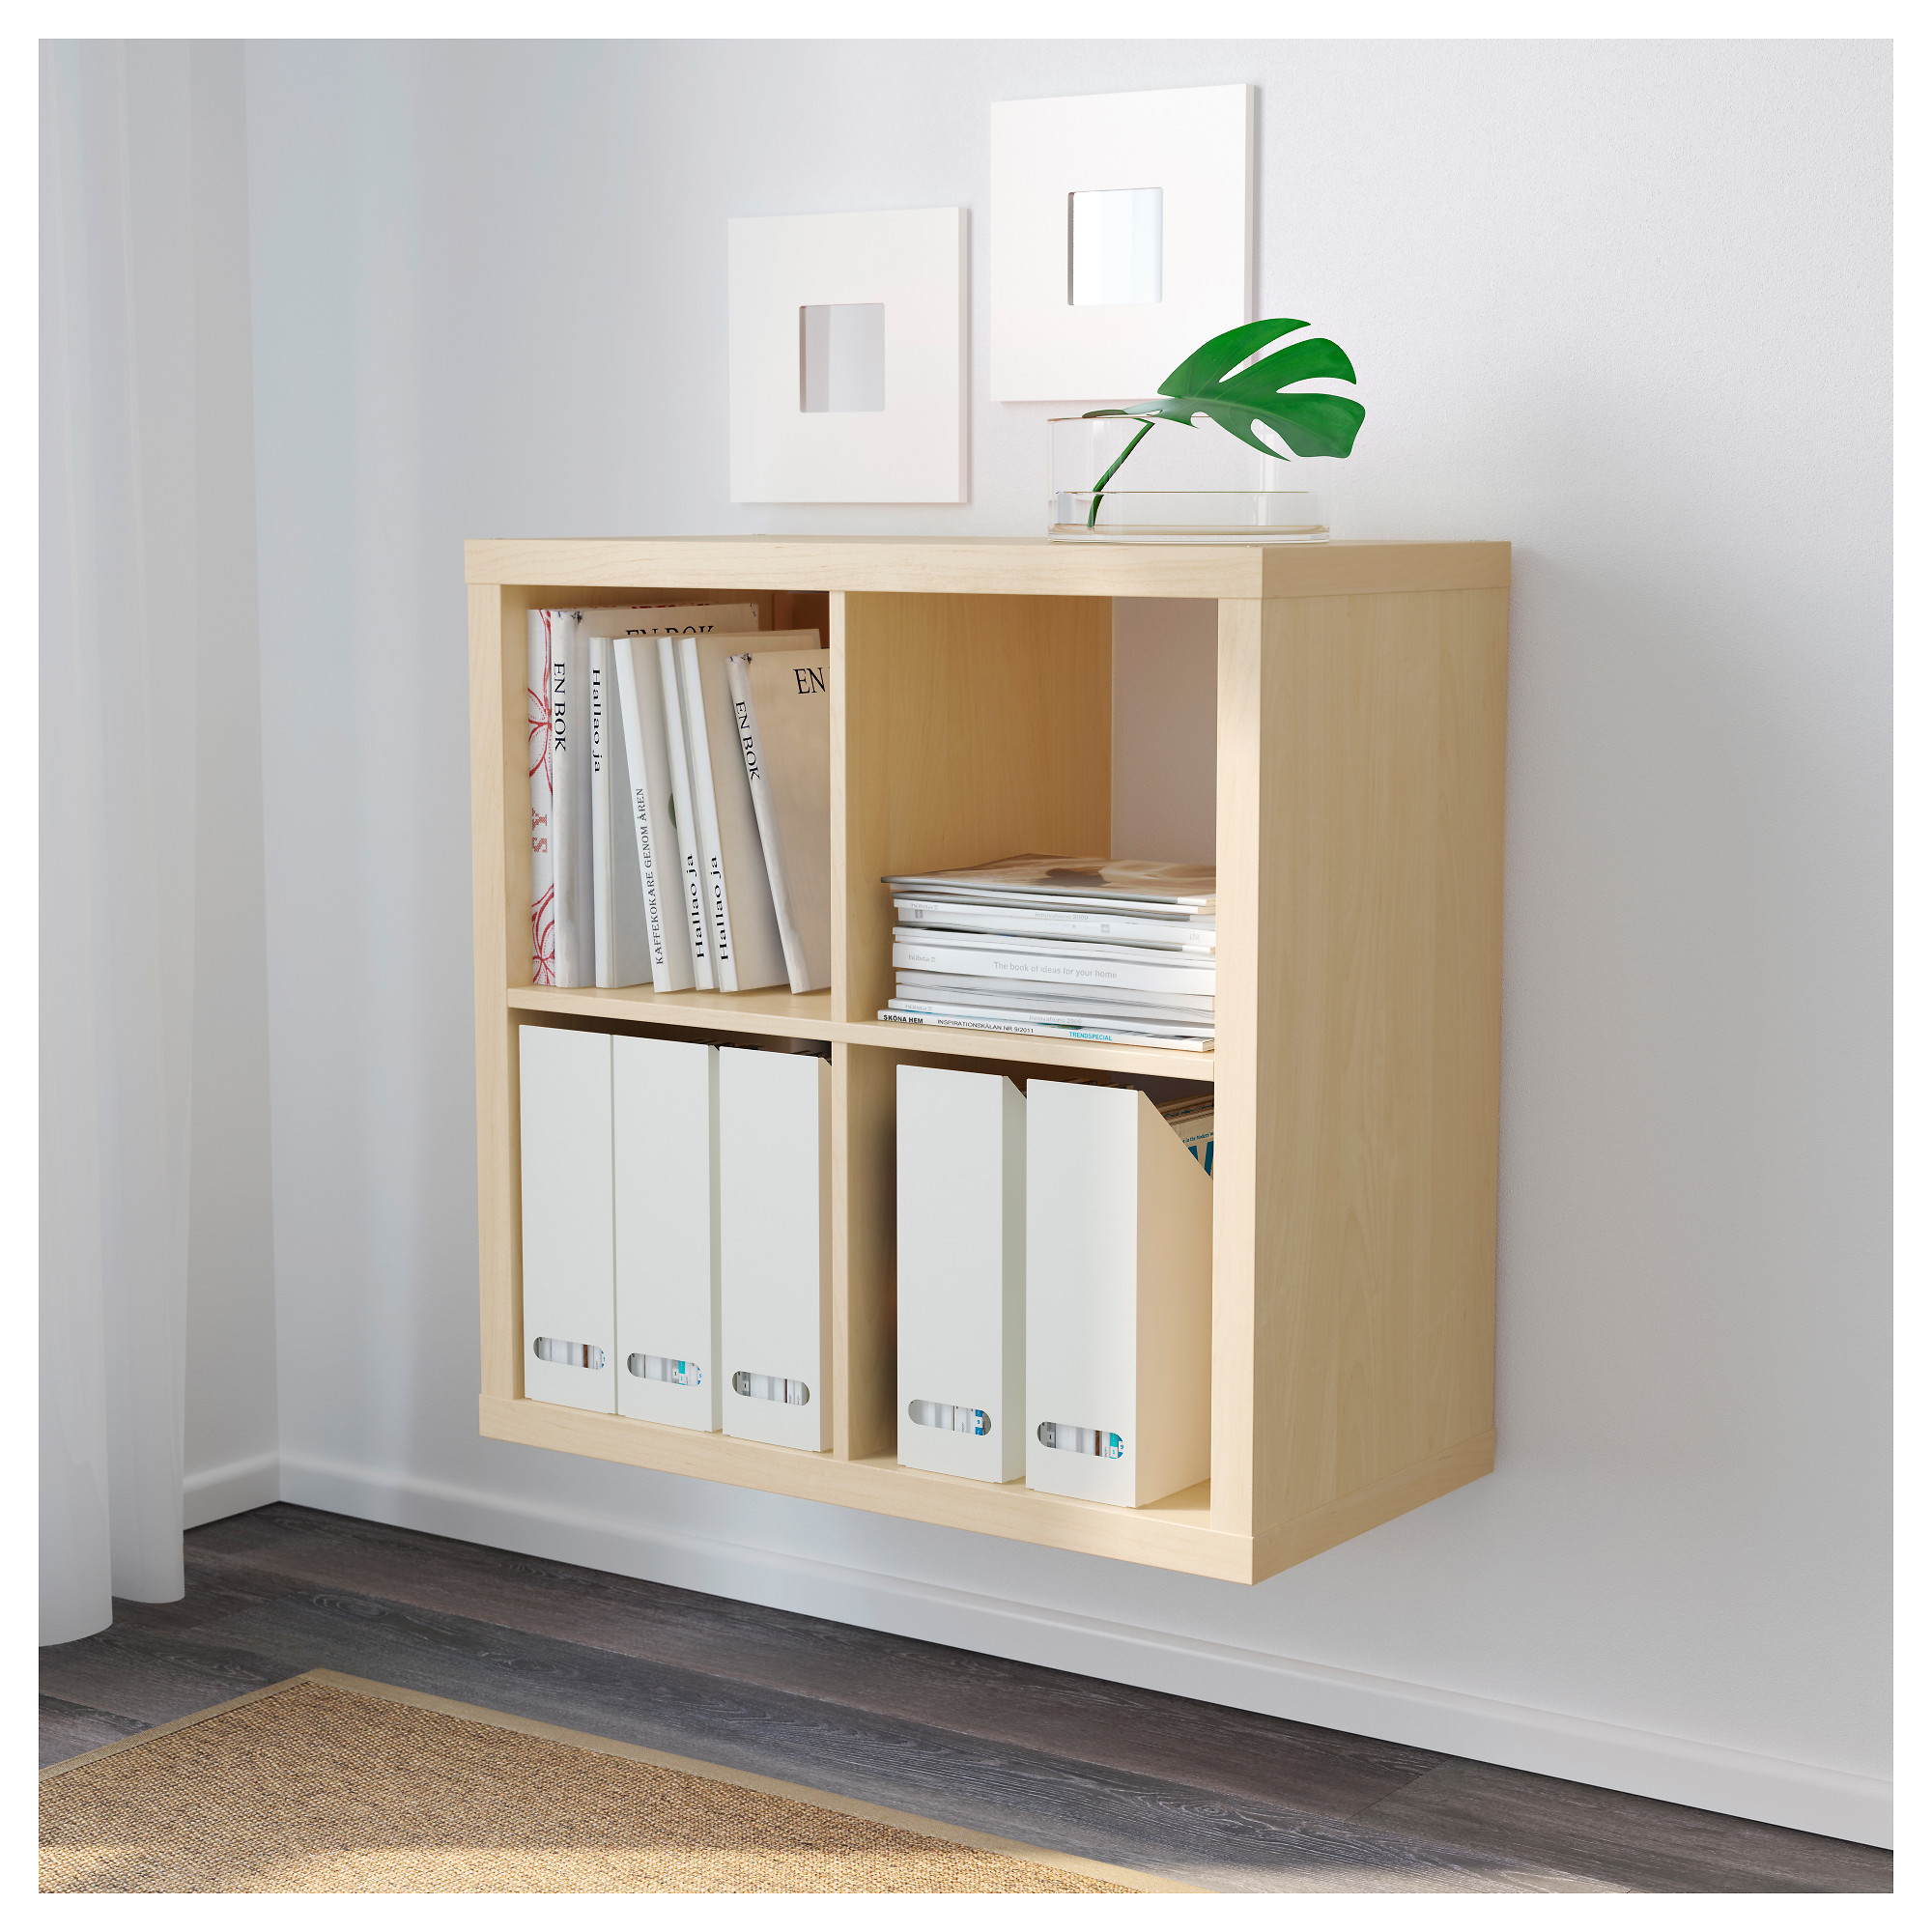 Image Result For Bookshelf Cubbies That Can Mount To Wall Kallax